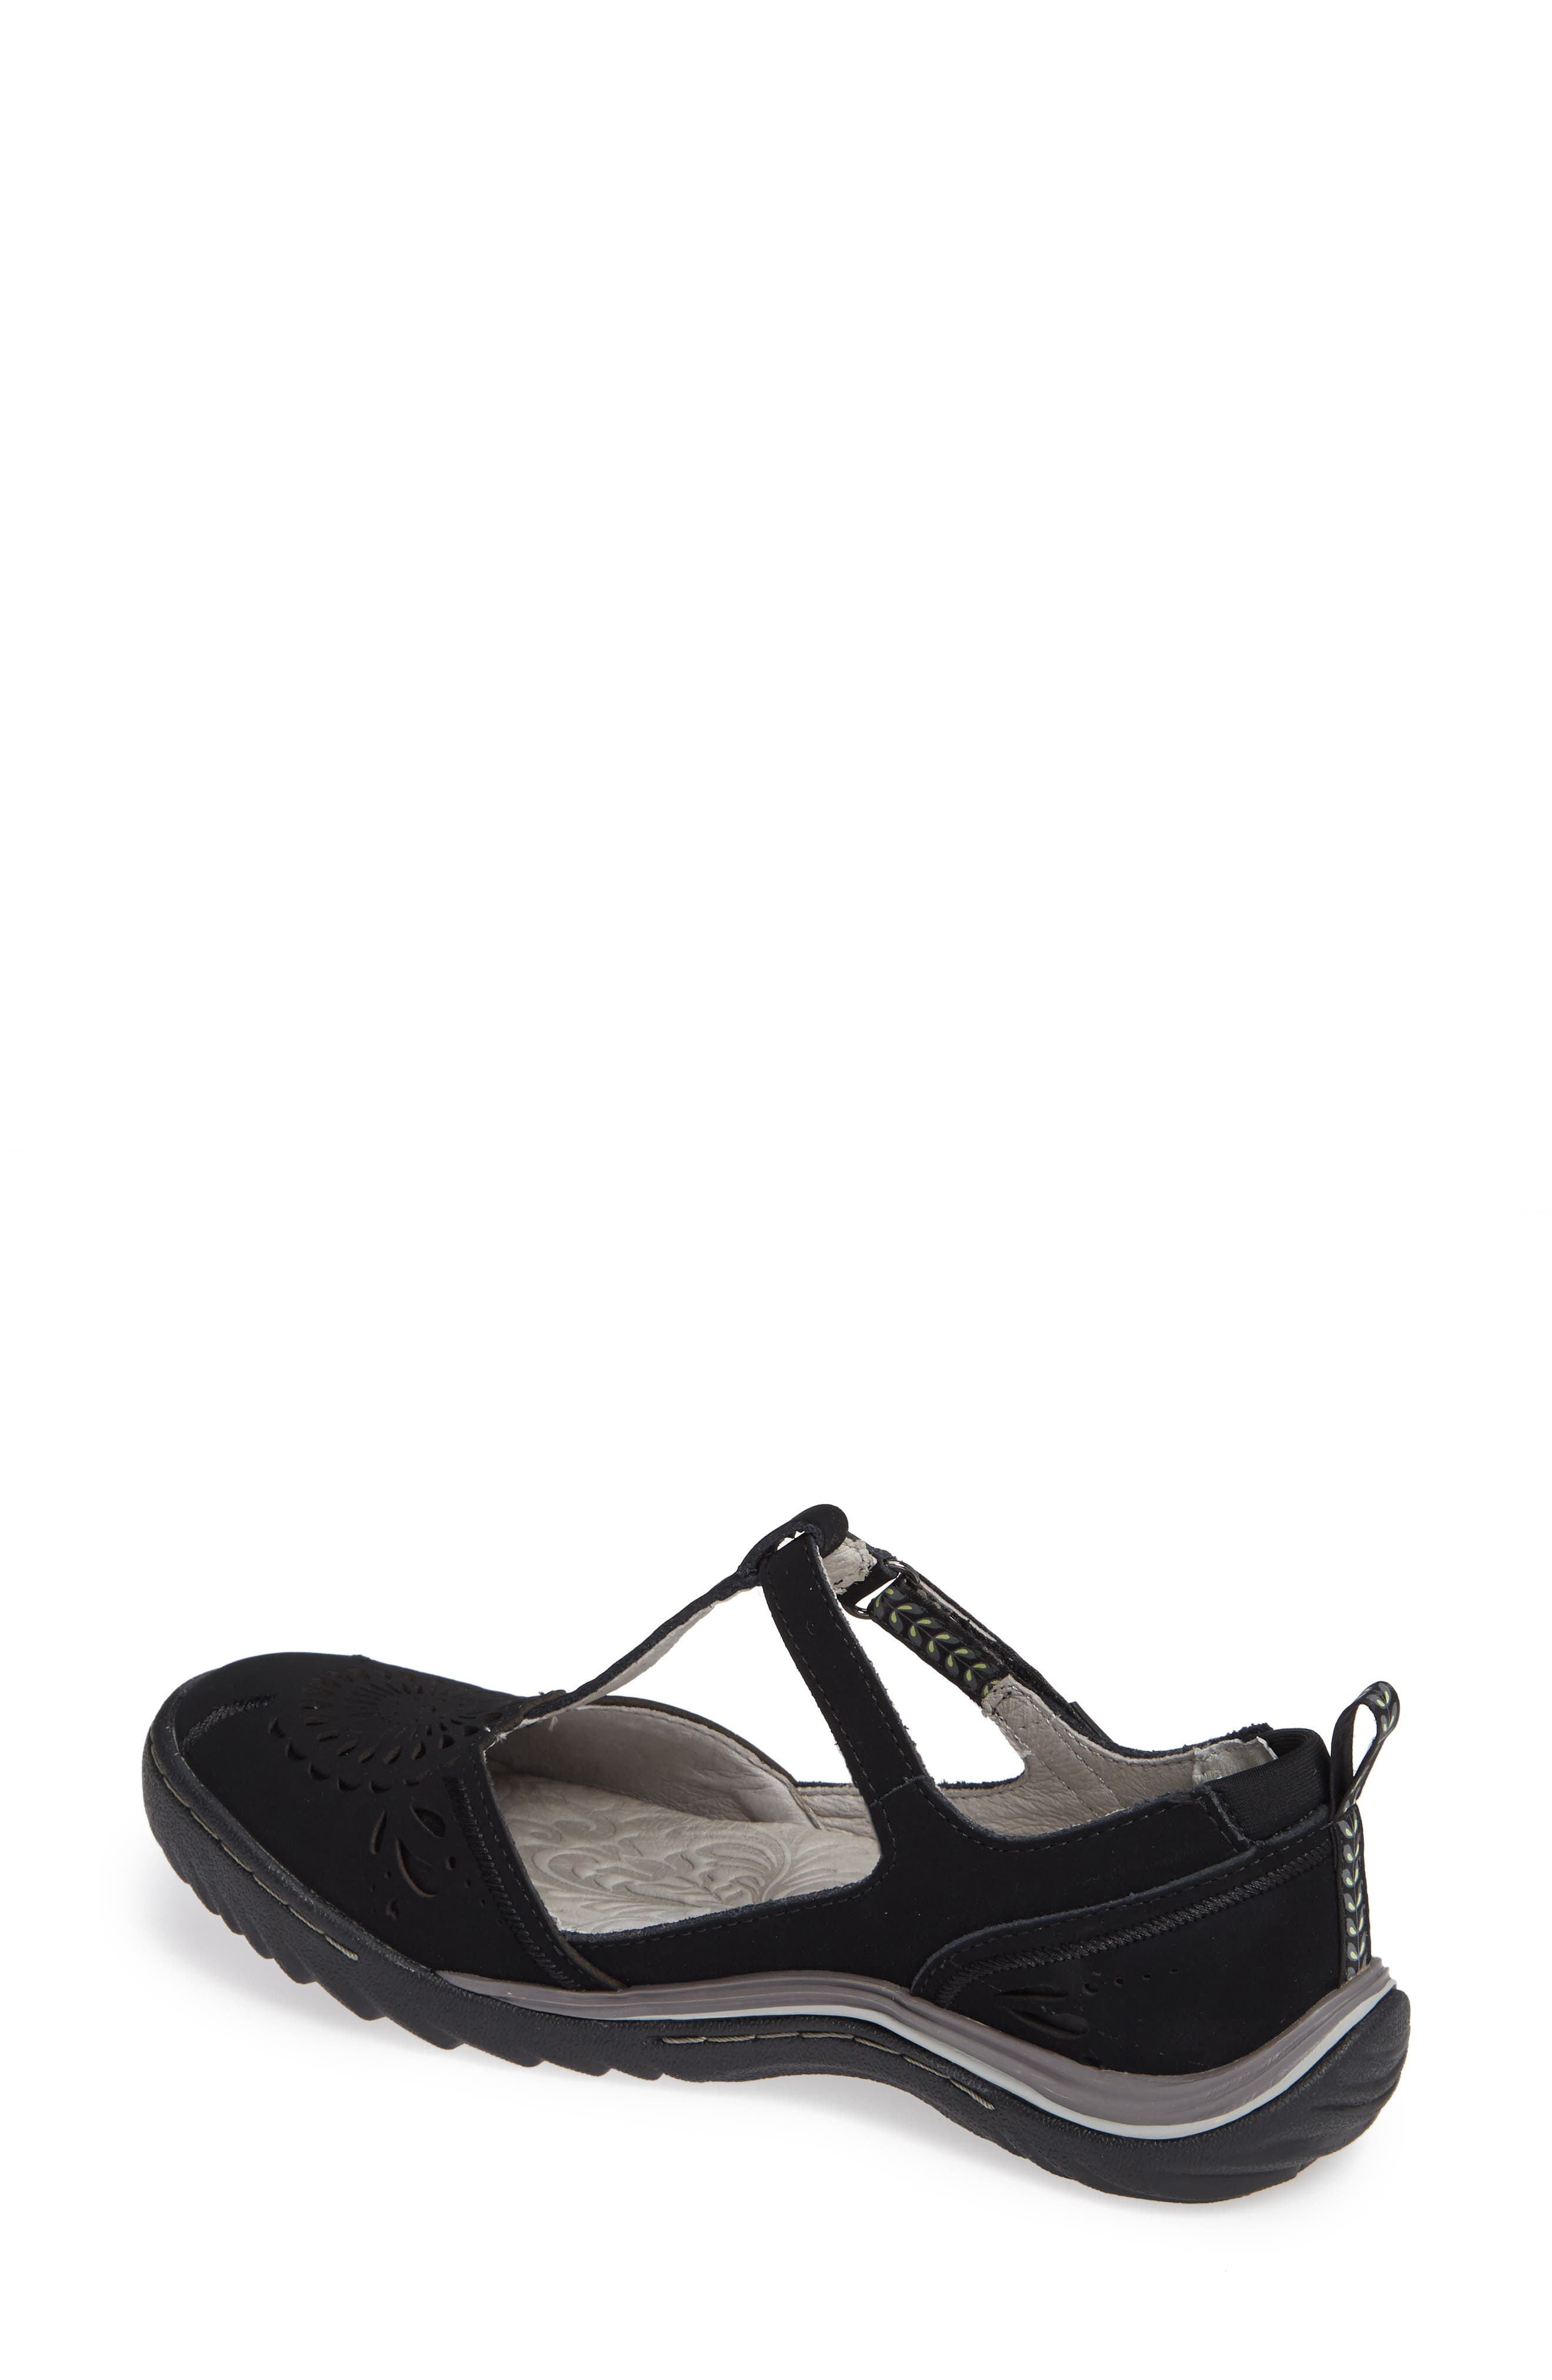 Sunkist Strappy Sneaker,                             Alternate thumbnail 2, color,                             BLACK/ CHIVE NUBUCK LEATHER